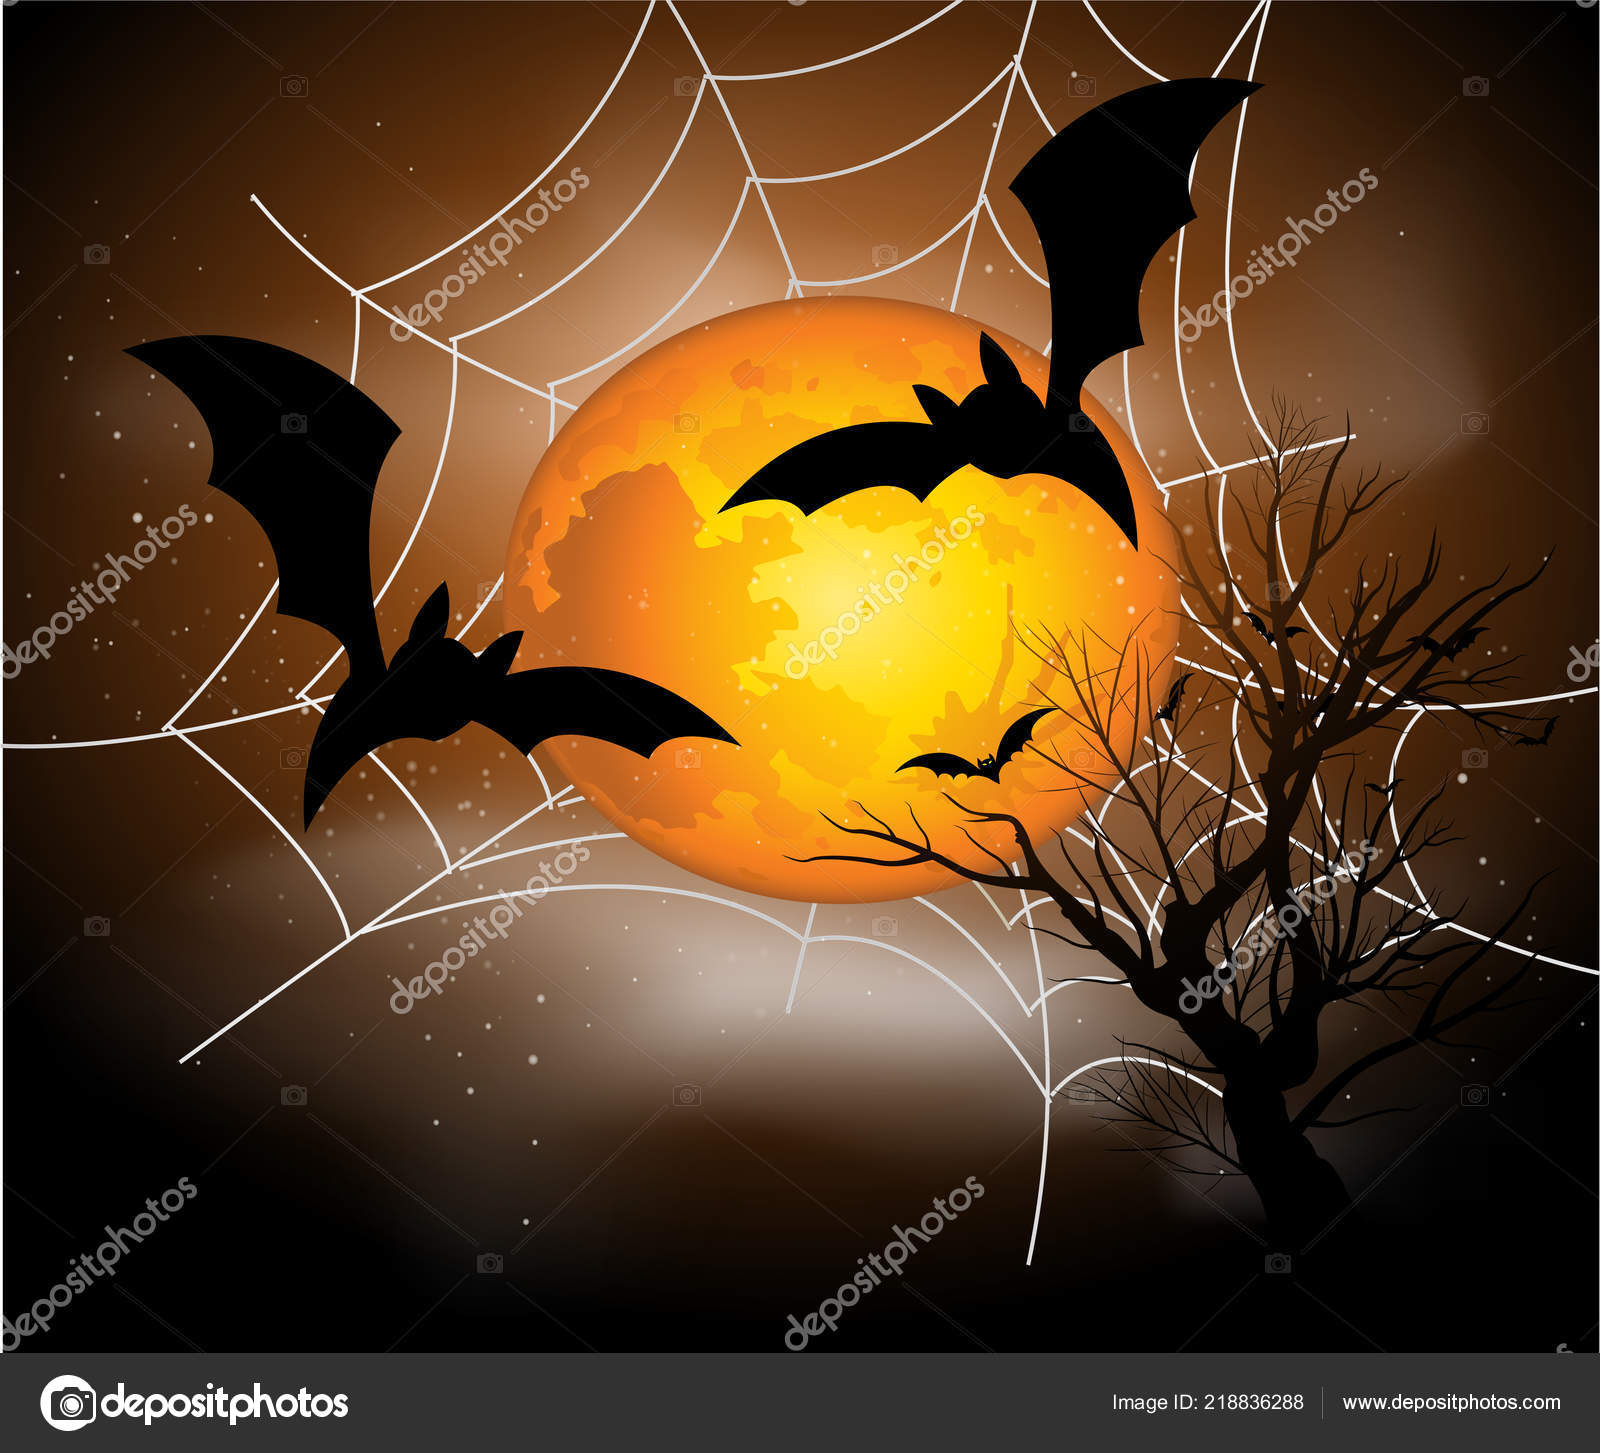 Invitation Card Ideas For Party Halloween Party Invitation